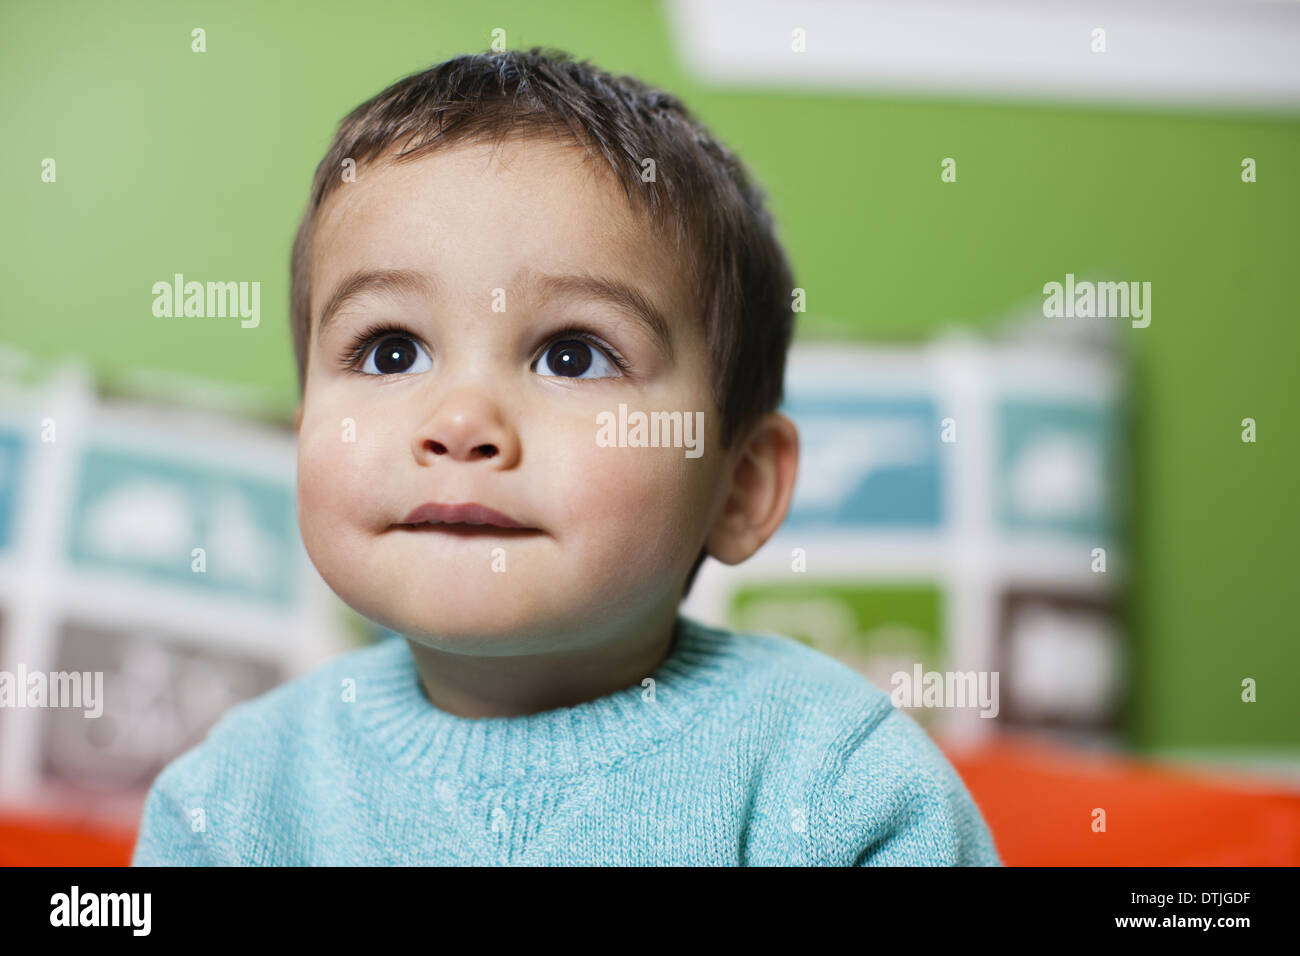 A young boy looking up with an anxious expression on his face  Pennsylvania USA - Stock Image